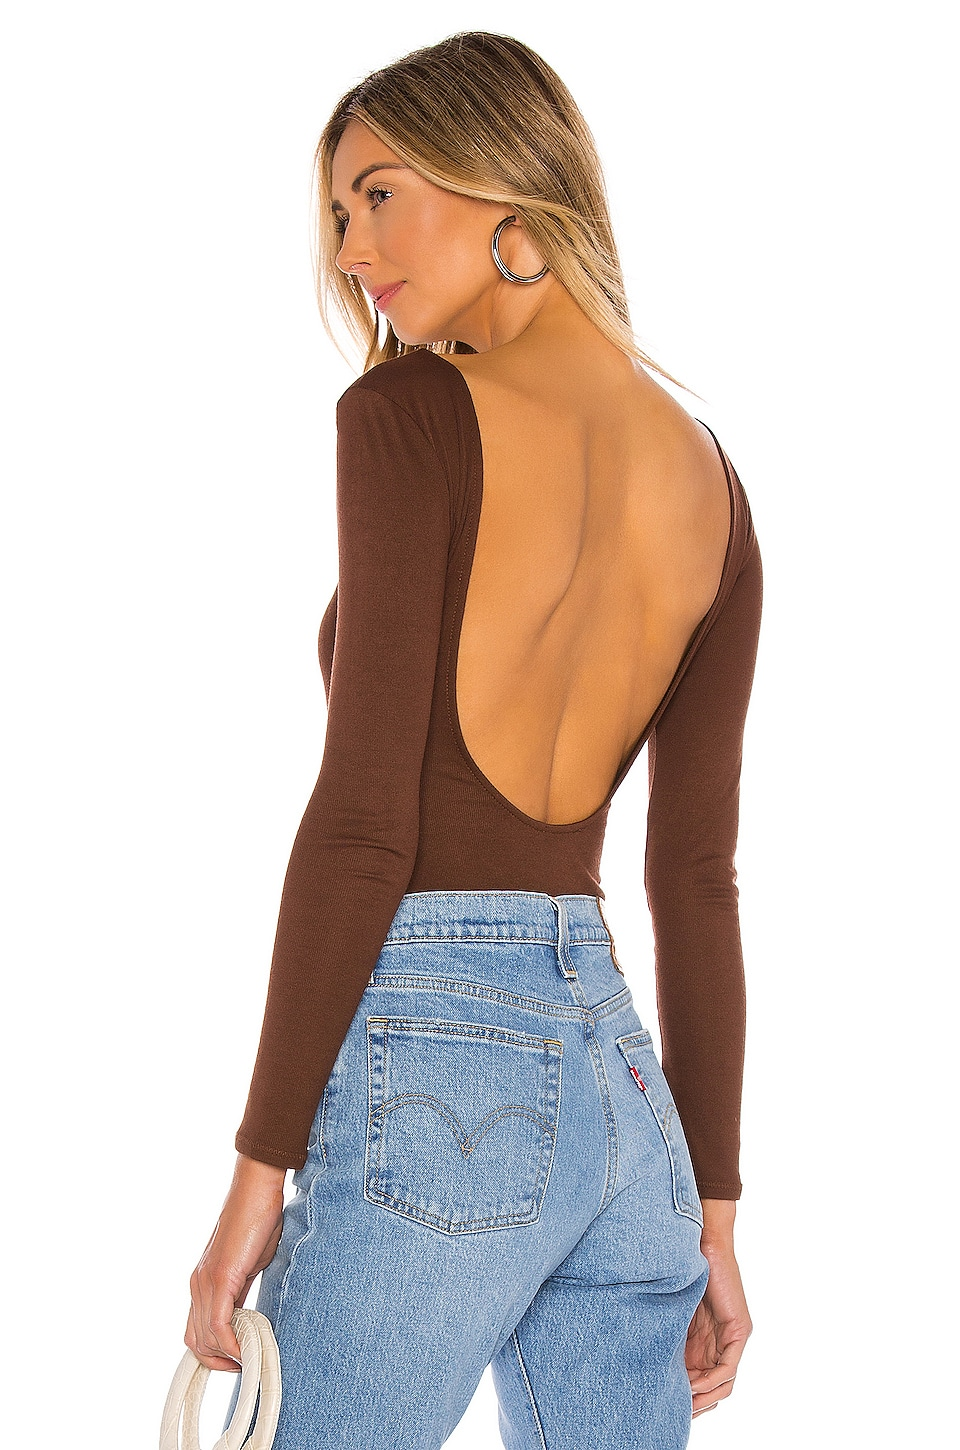 Privacy Please Nima Bodysuit in Chocolate Brown